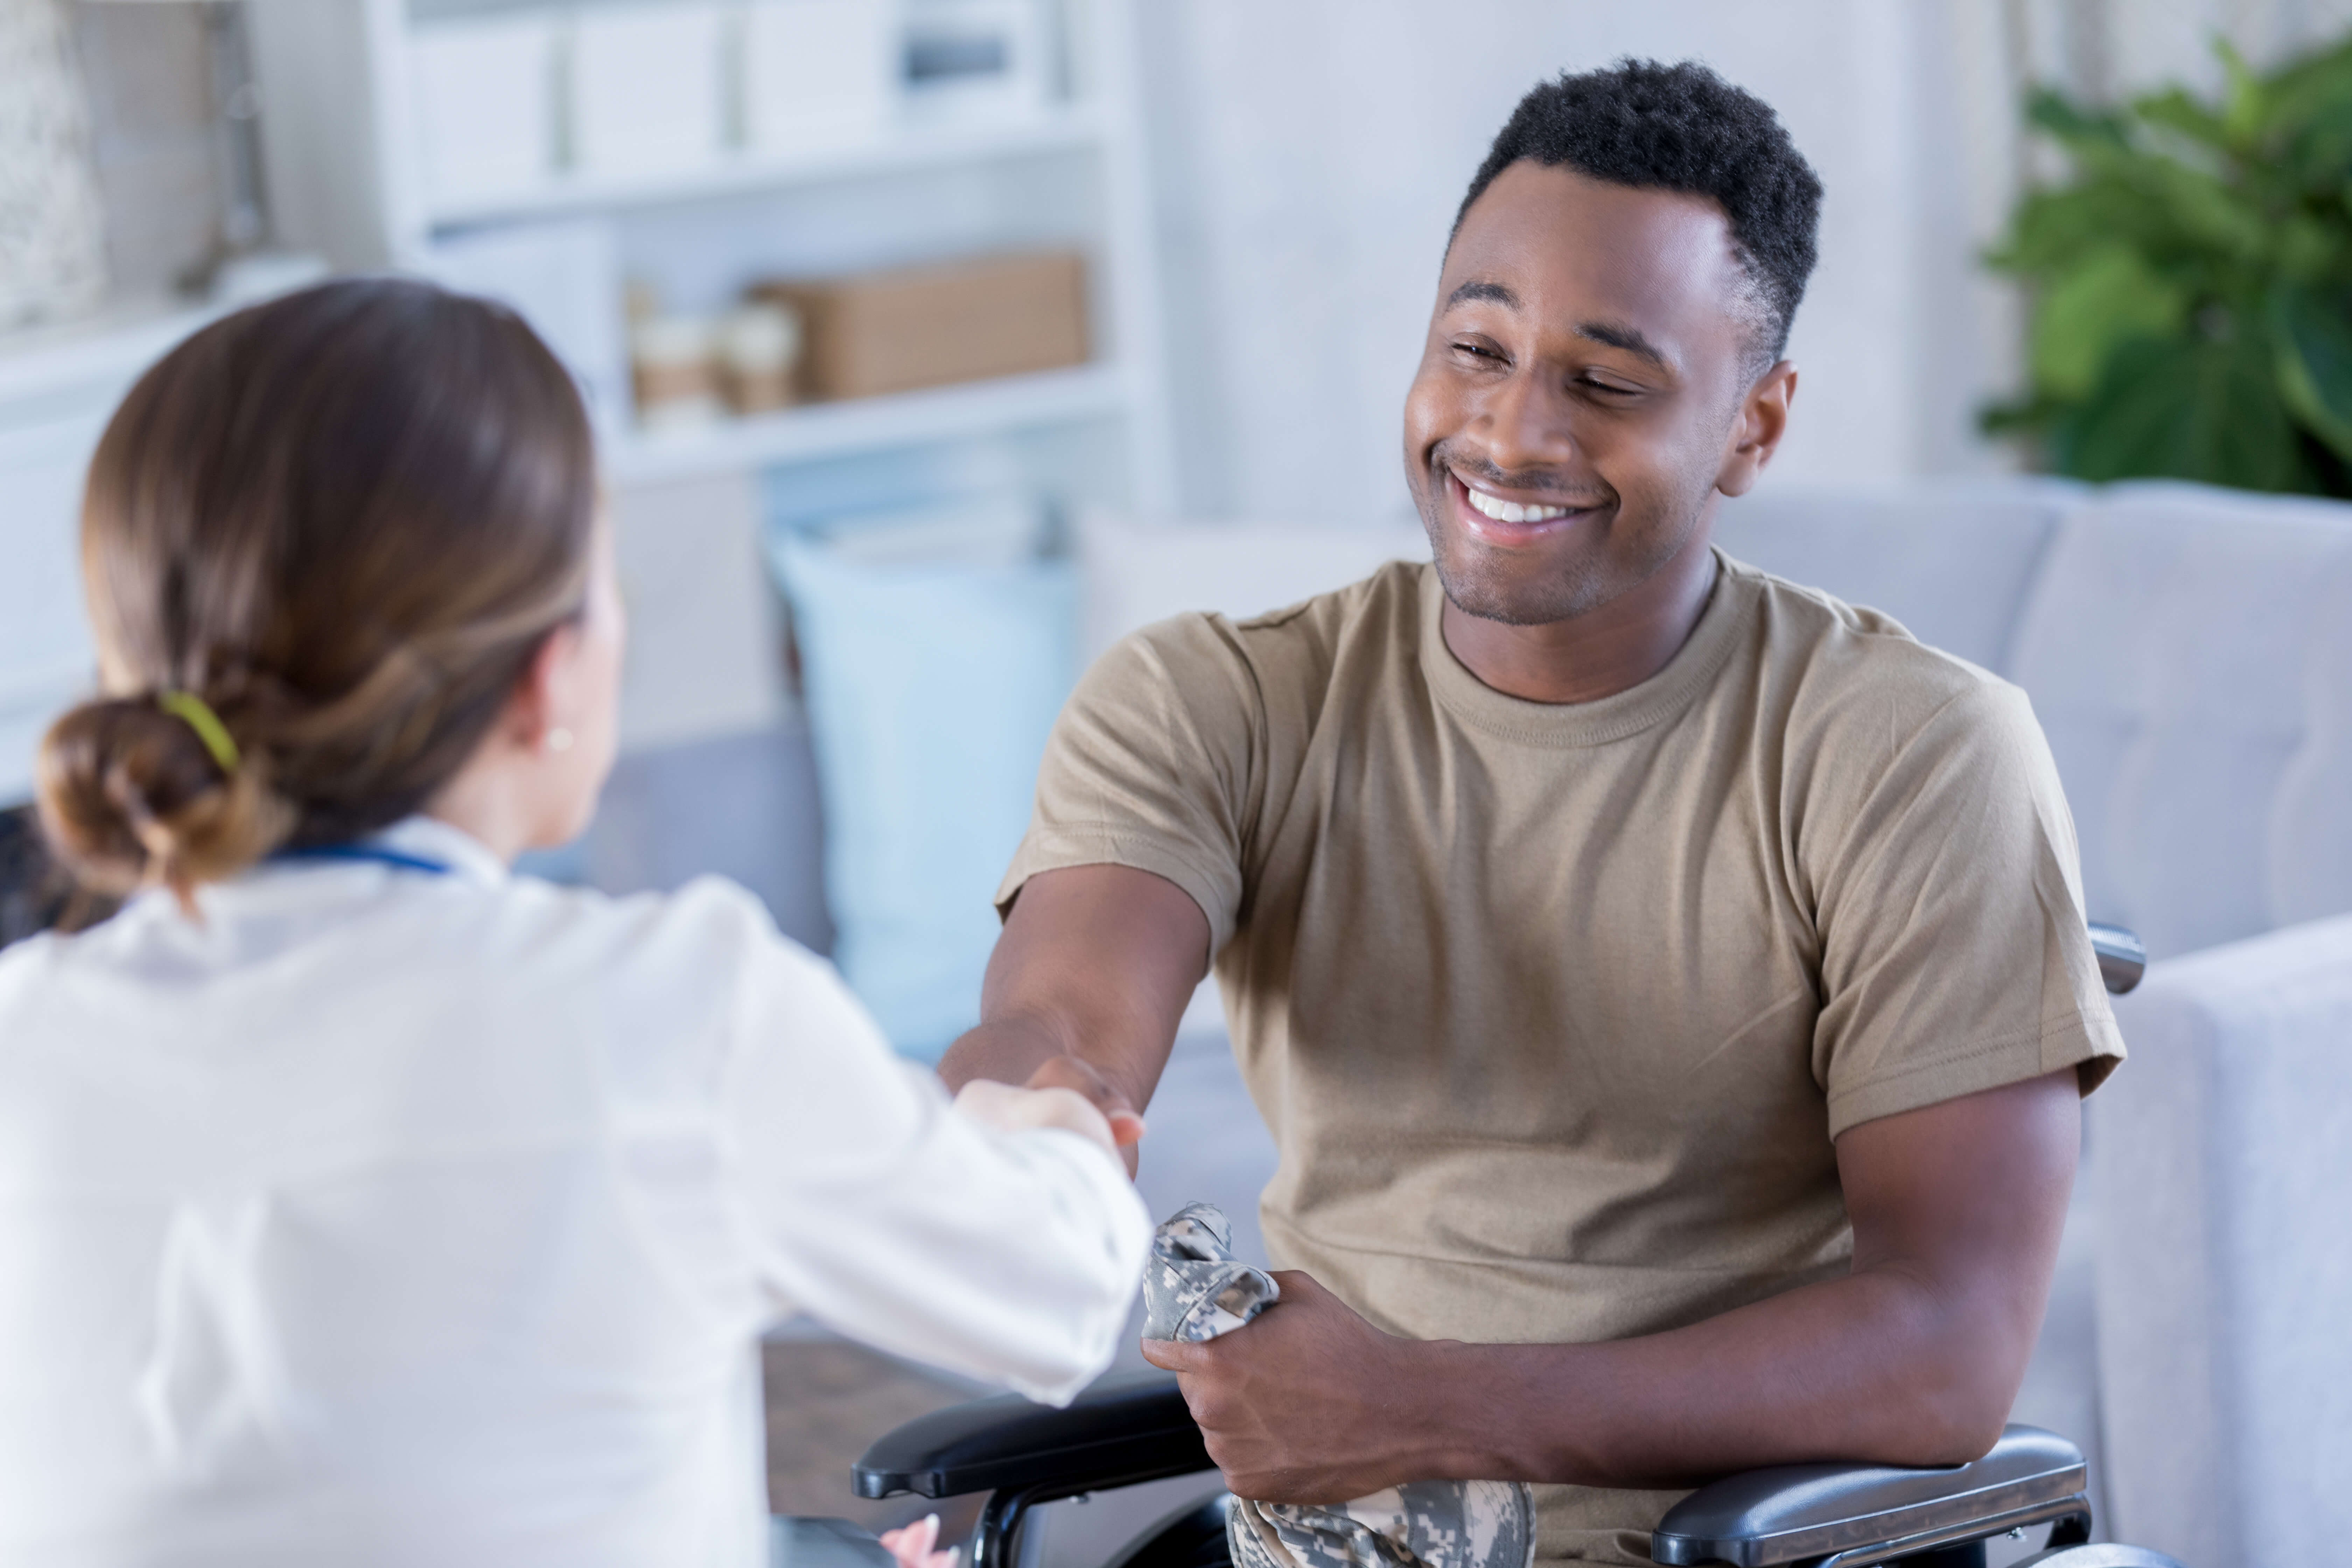 A wheelchair bound military office with PTSD, smiling as he is receiving medical assistance.